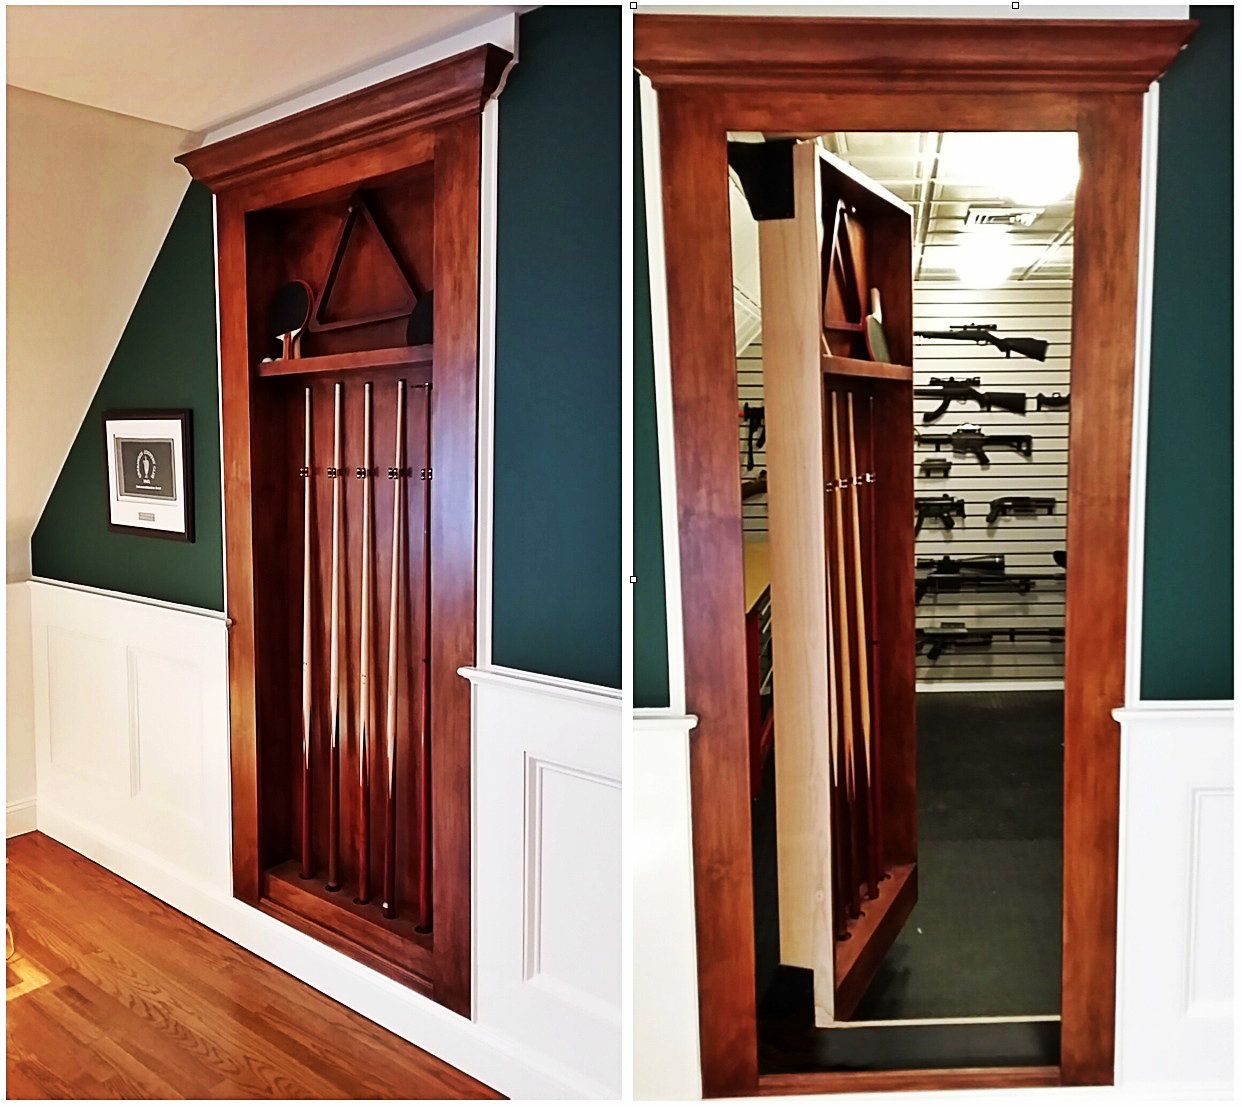 hidden gun safe - discreetly hide your gun safe